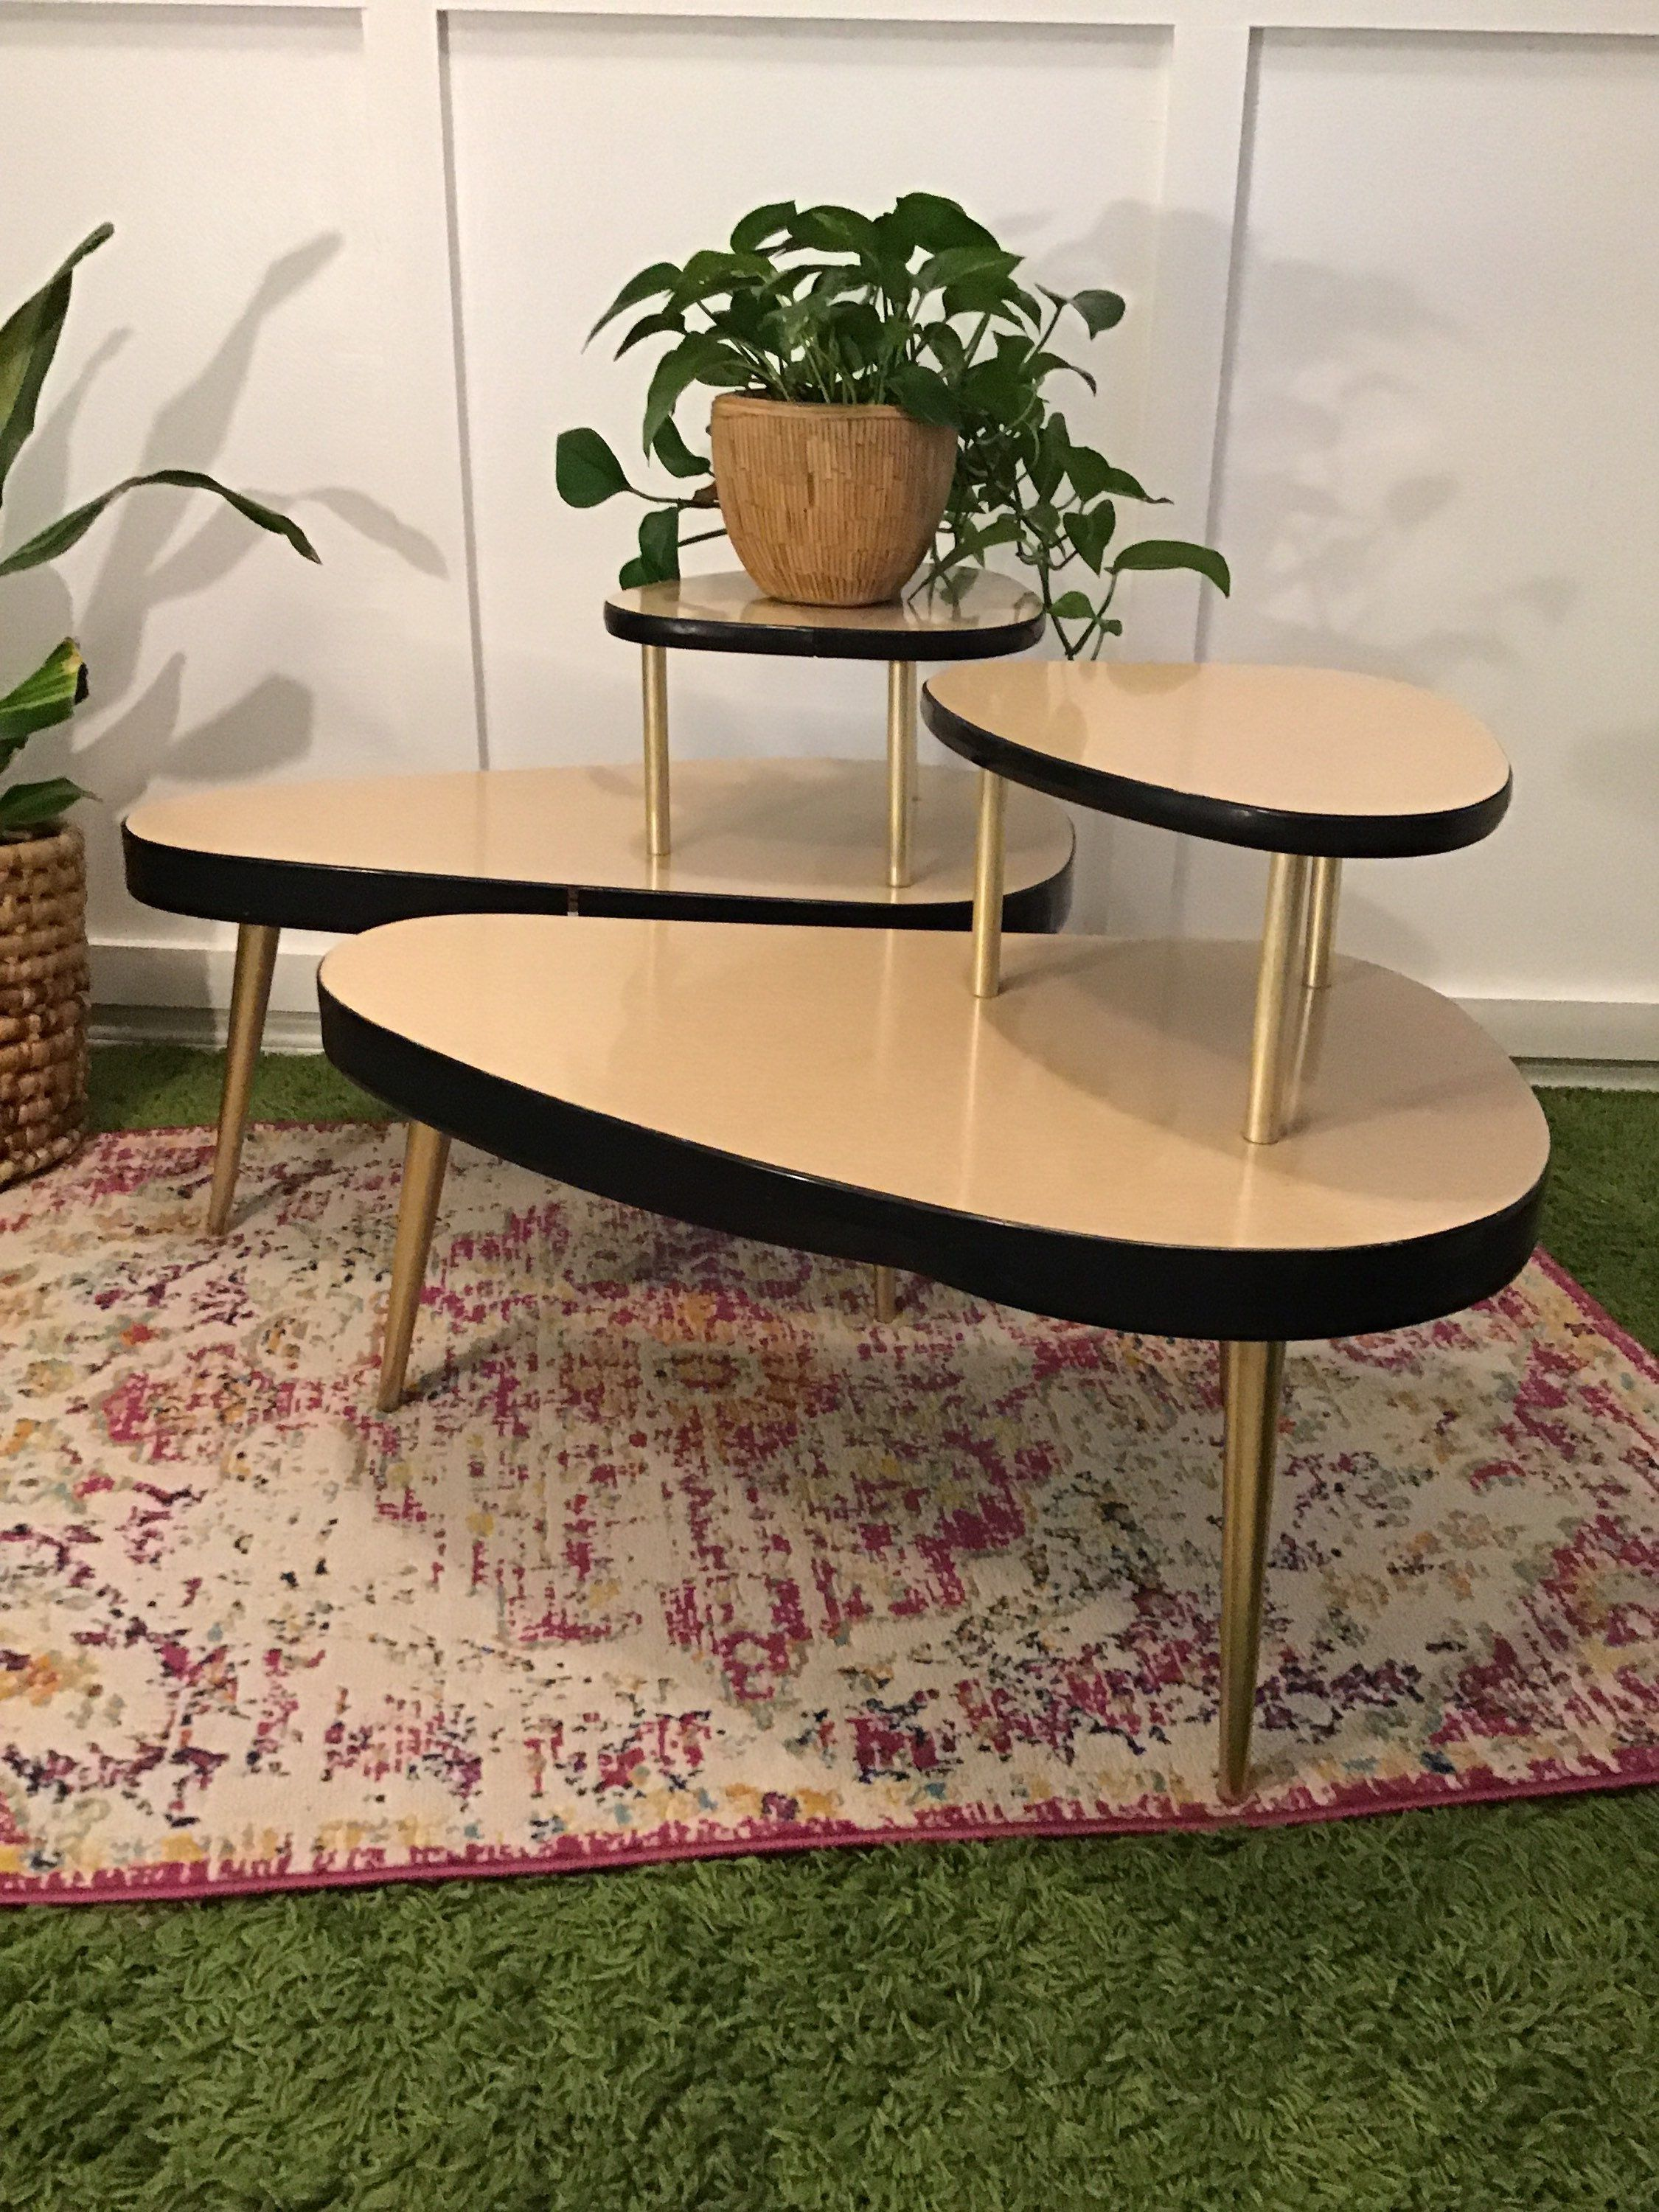 End Table Set Of Two Light Wood Formica Two Tier Tables Black Etsy End Table Sets End Tables Table Set of two end tables